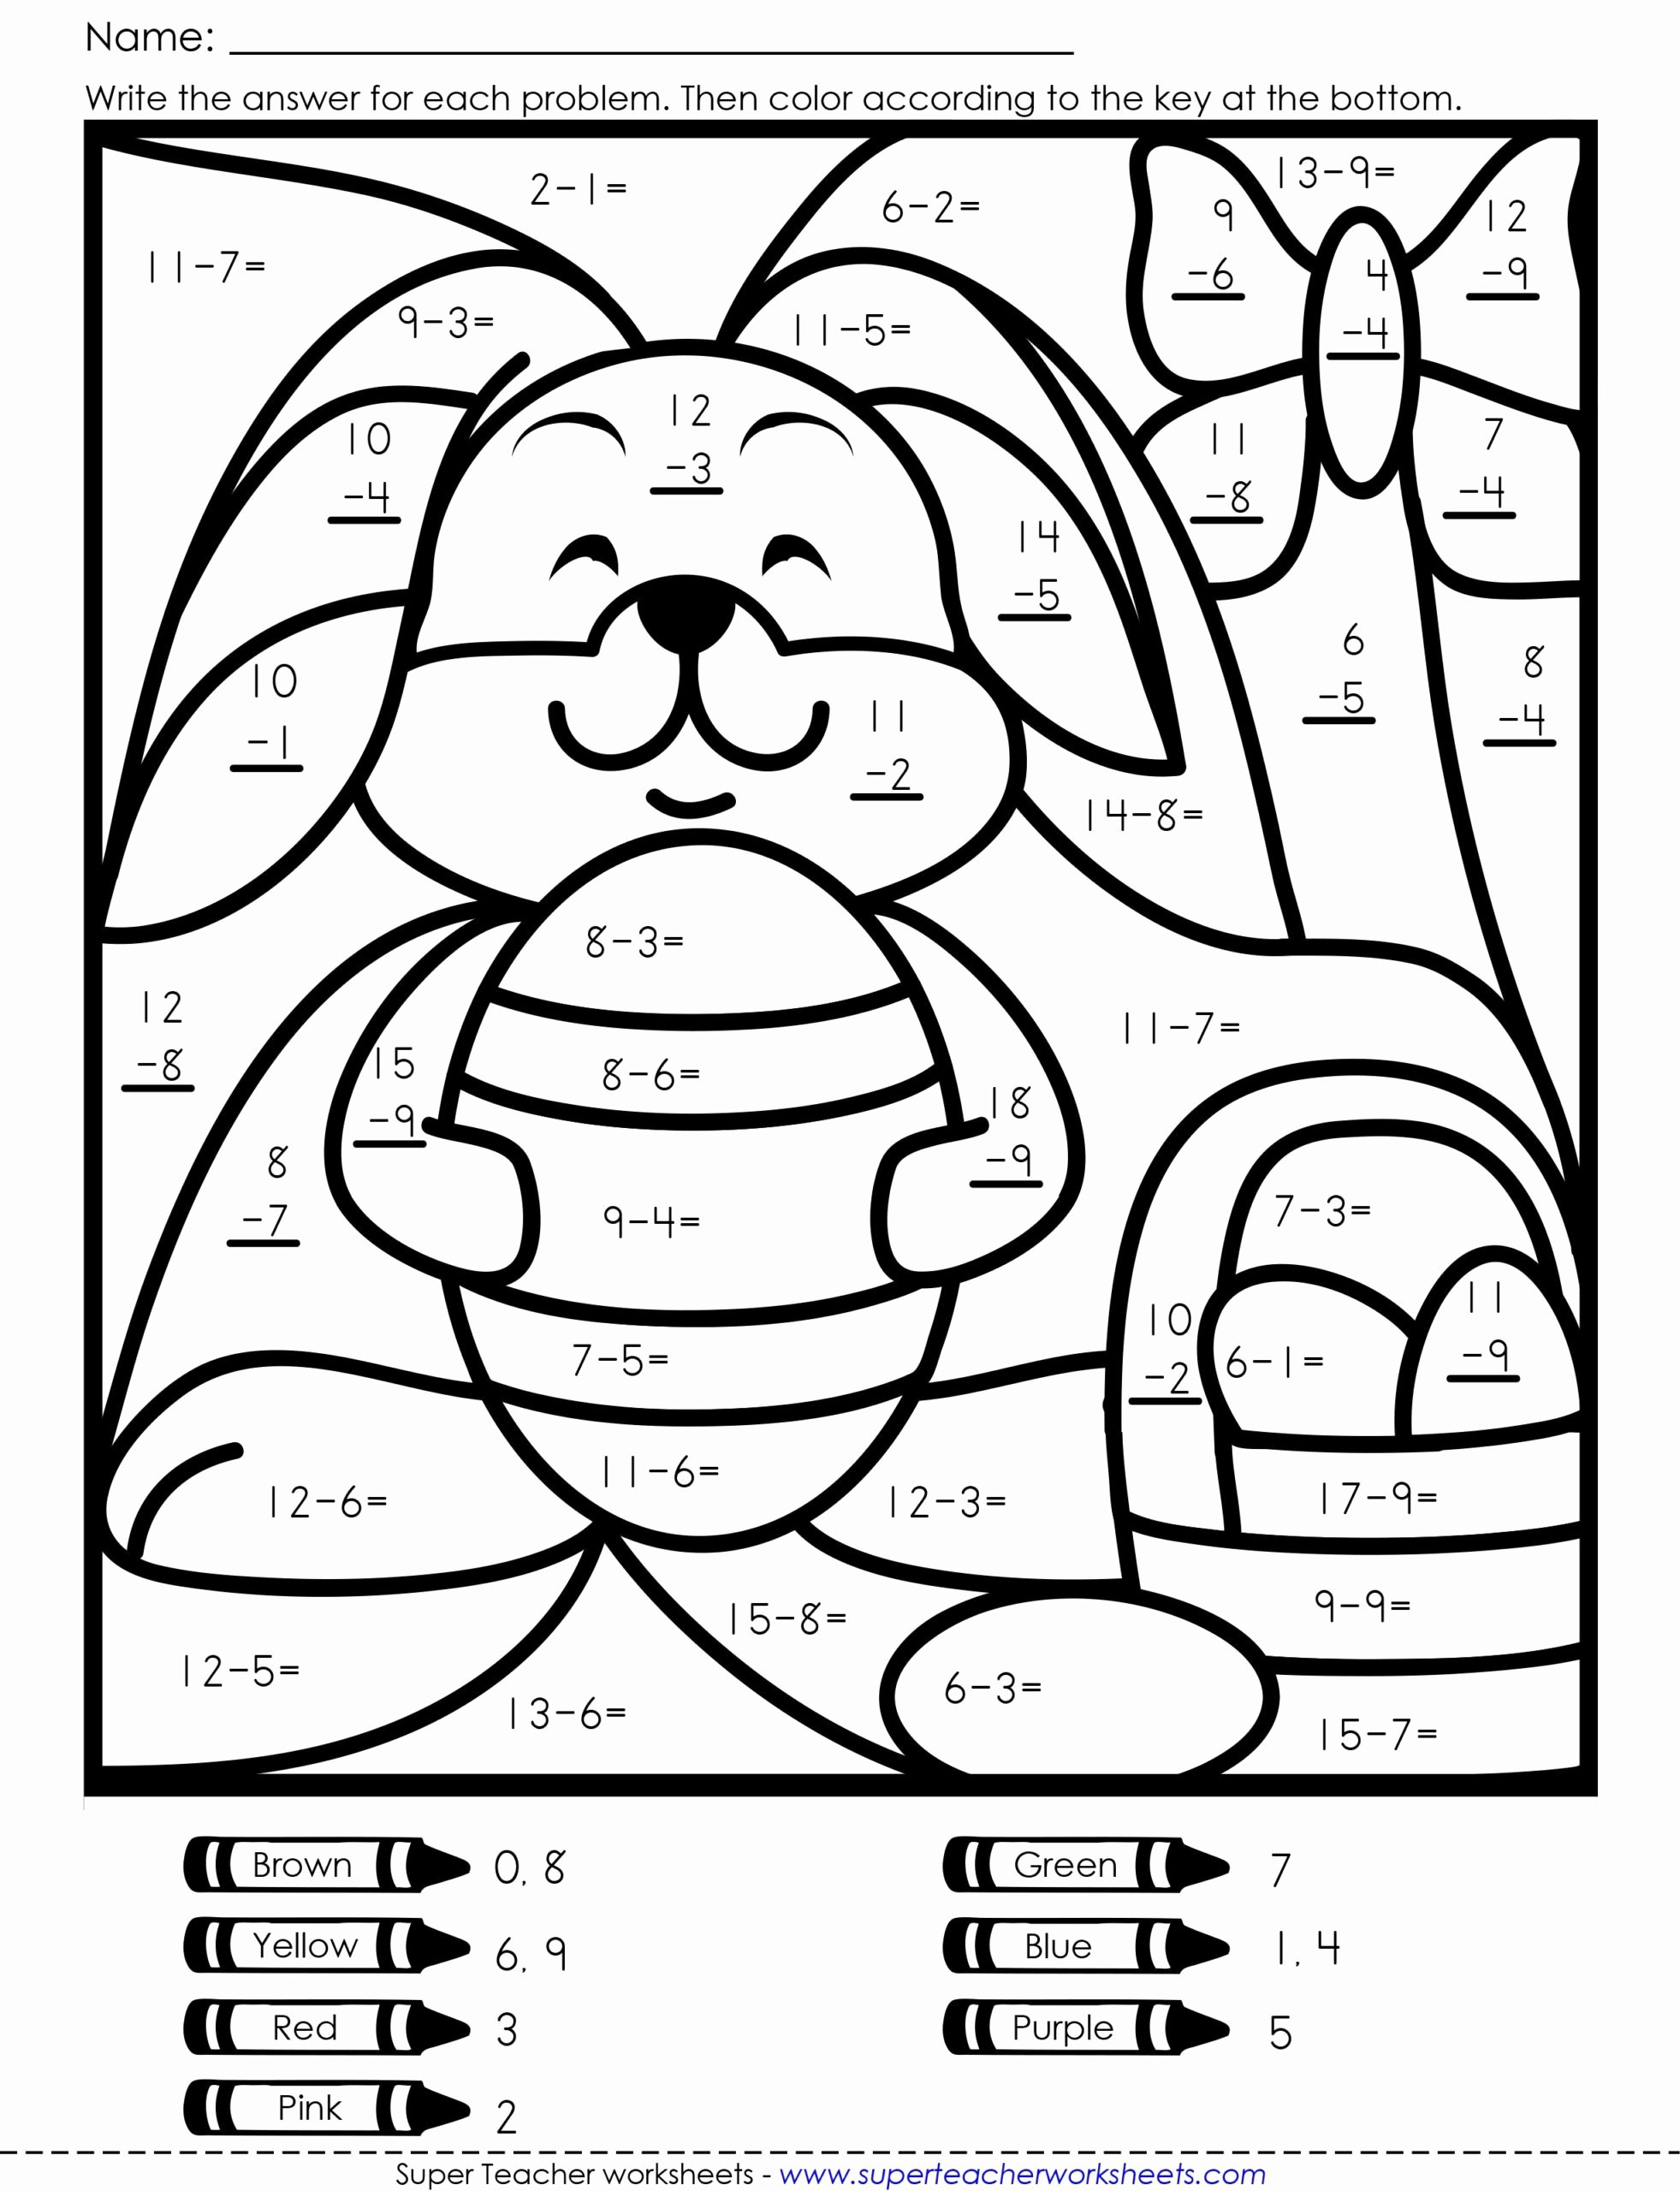 Printables Multiplication Worksheets Awesome Worksheets Math Worksheet Fantastic Maths Calculated